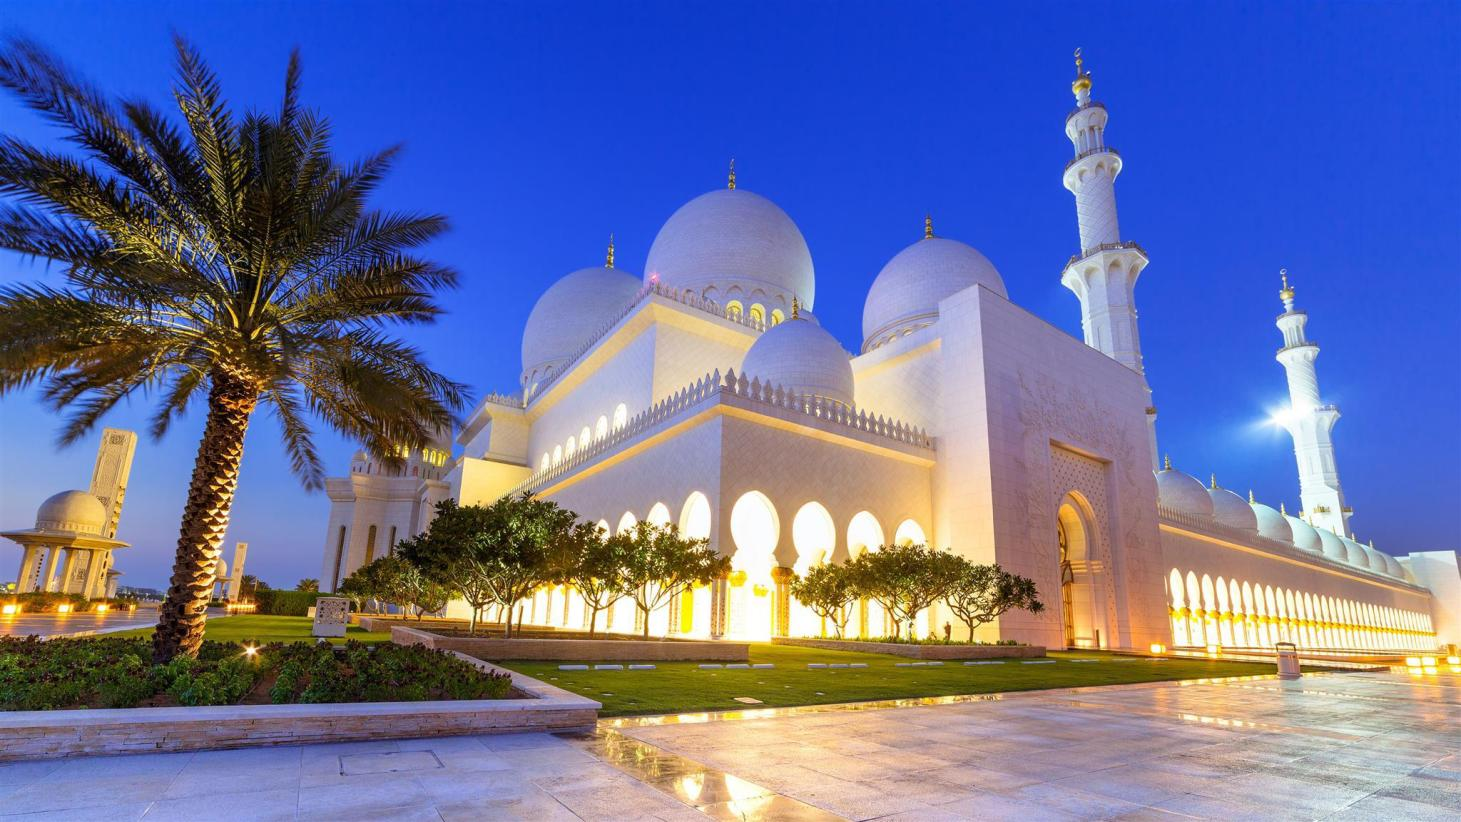 10 Best Abu Dhabi Hotels: HD Photos + Reviews of Hotels in Abu ...